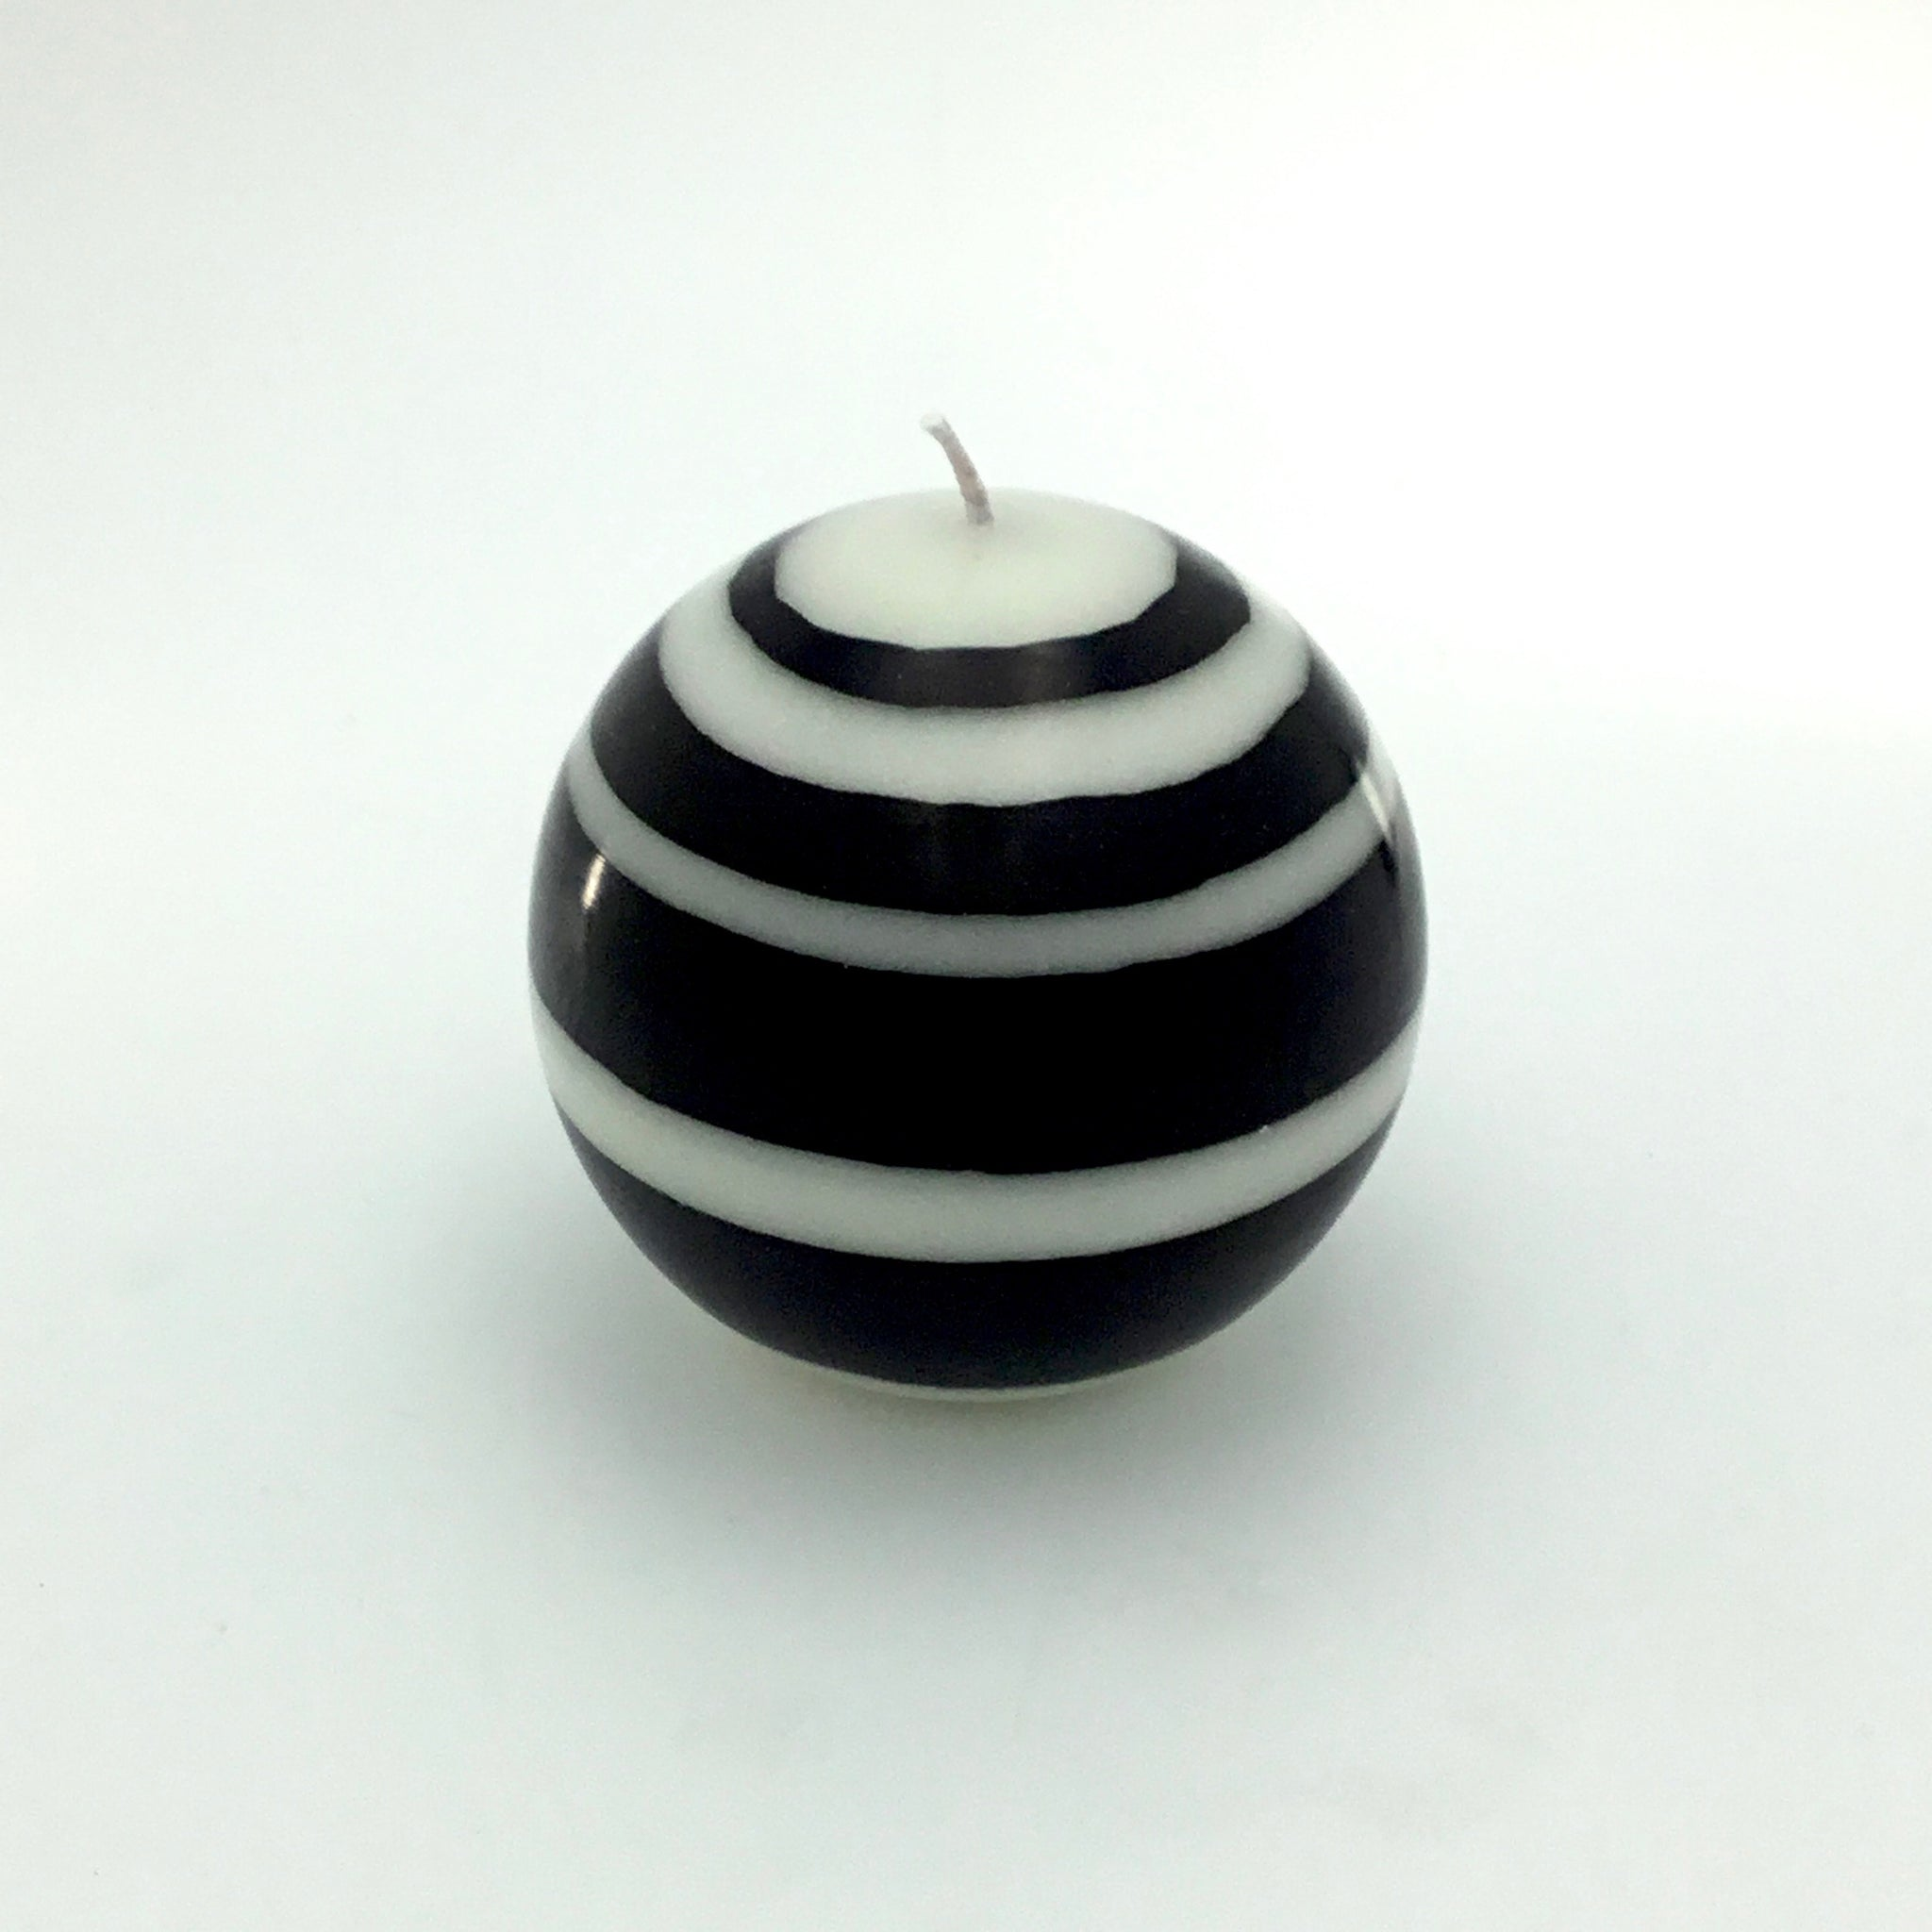 British Colour Standard Small Ball Candle